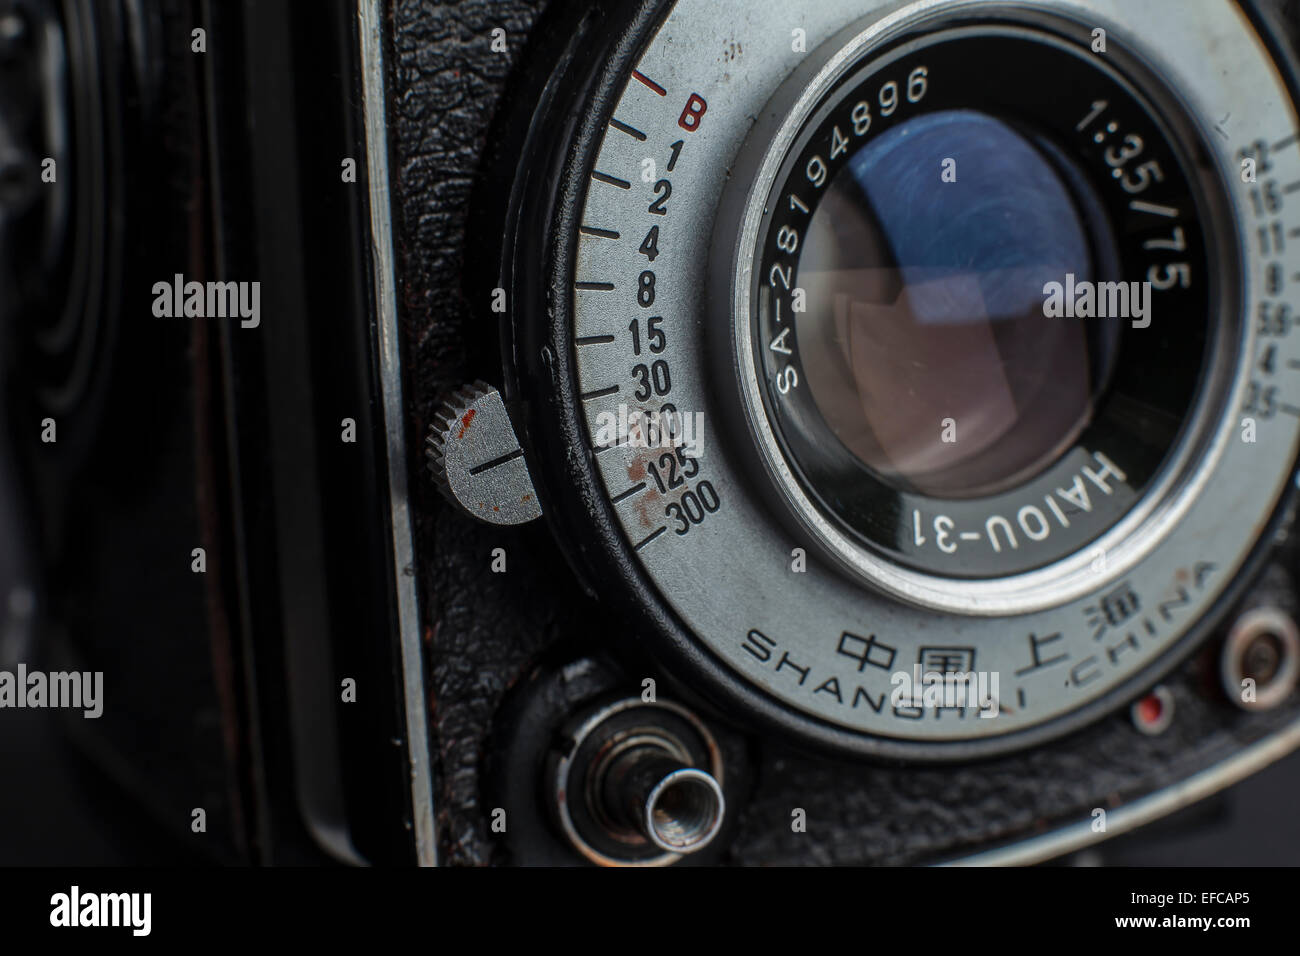 the bottom front lens element of an vintage medium format twin reflex camera - Stock Image